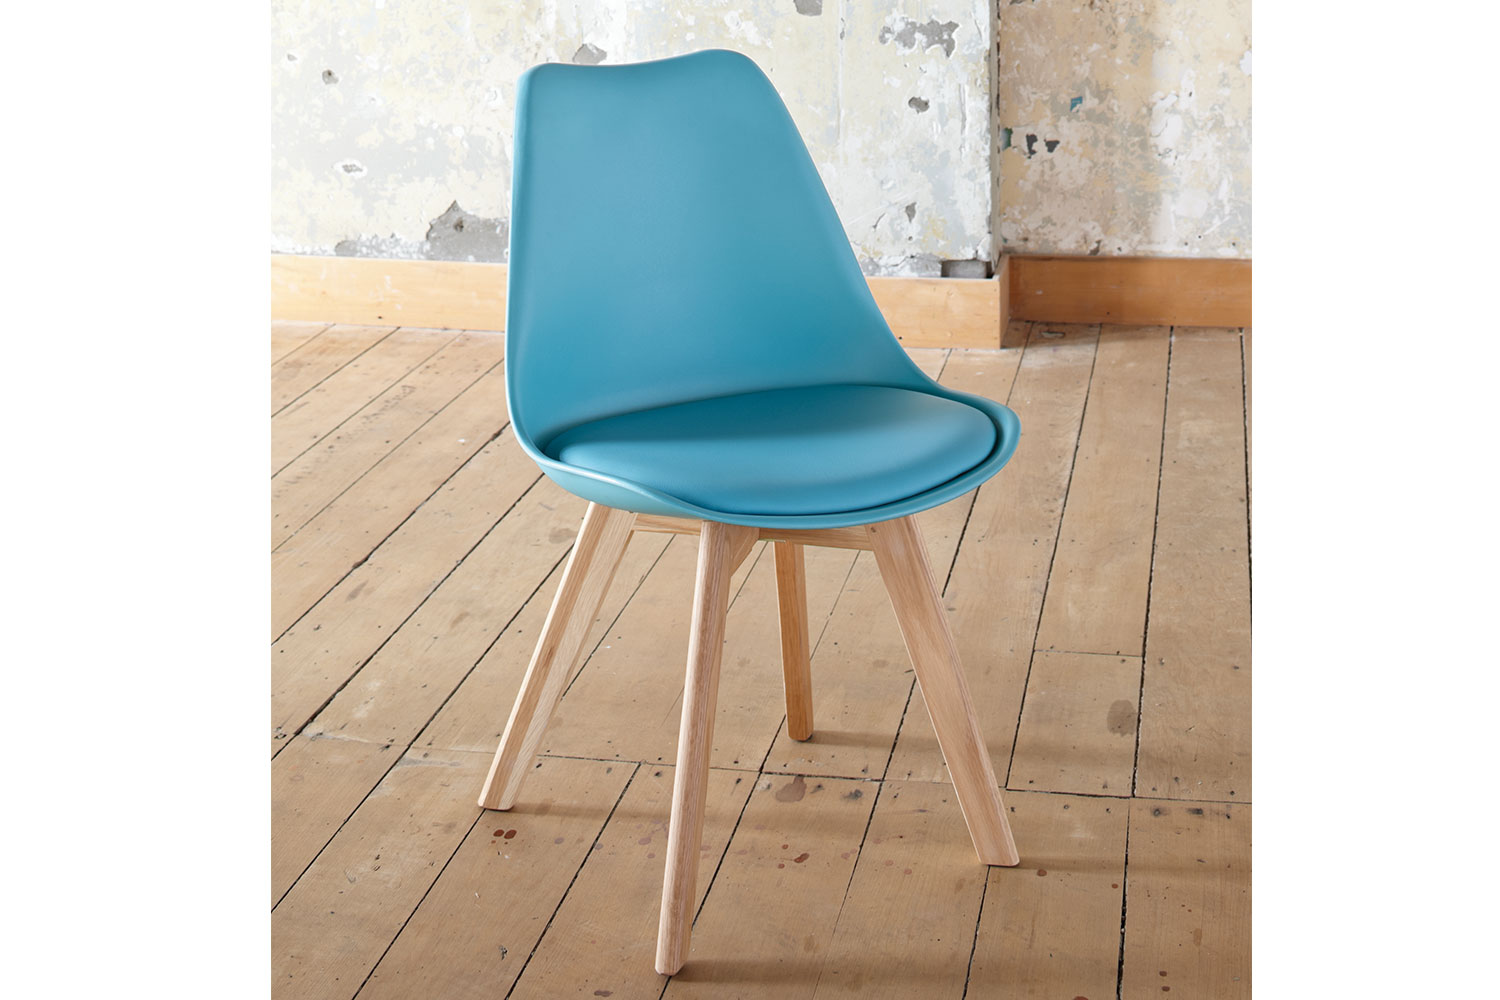 ergonomic chair harvey norman used table and chairs for restaurant use stuka office teal blue paulack furniture